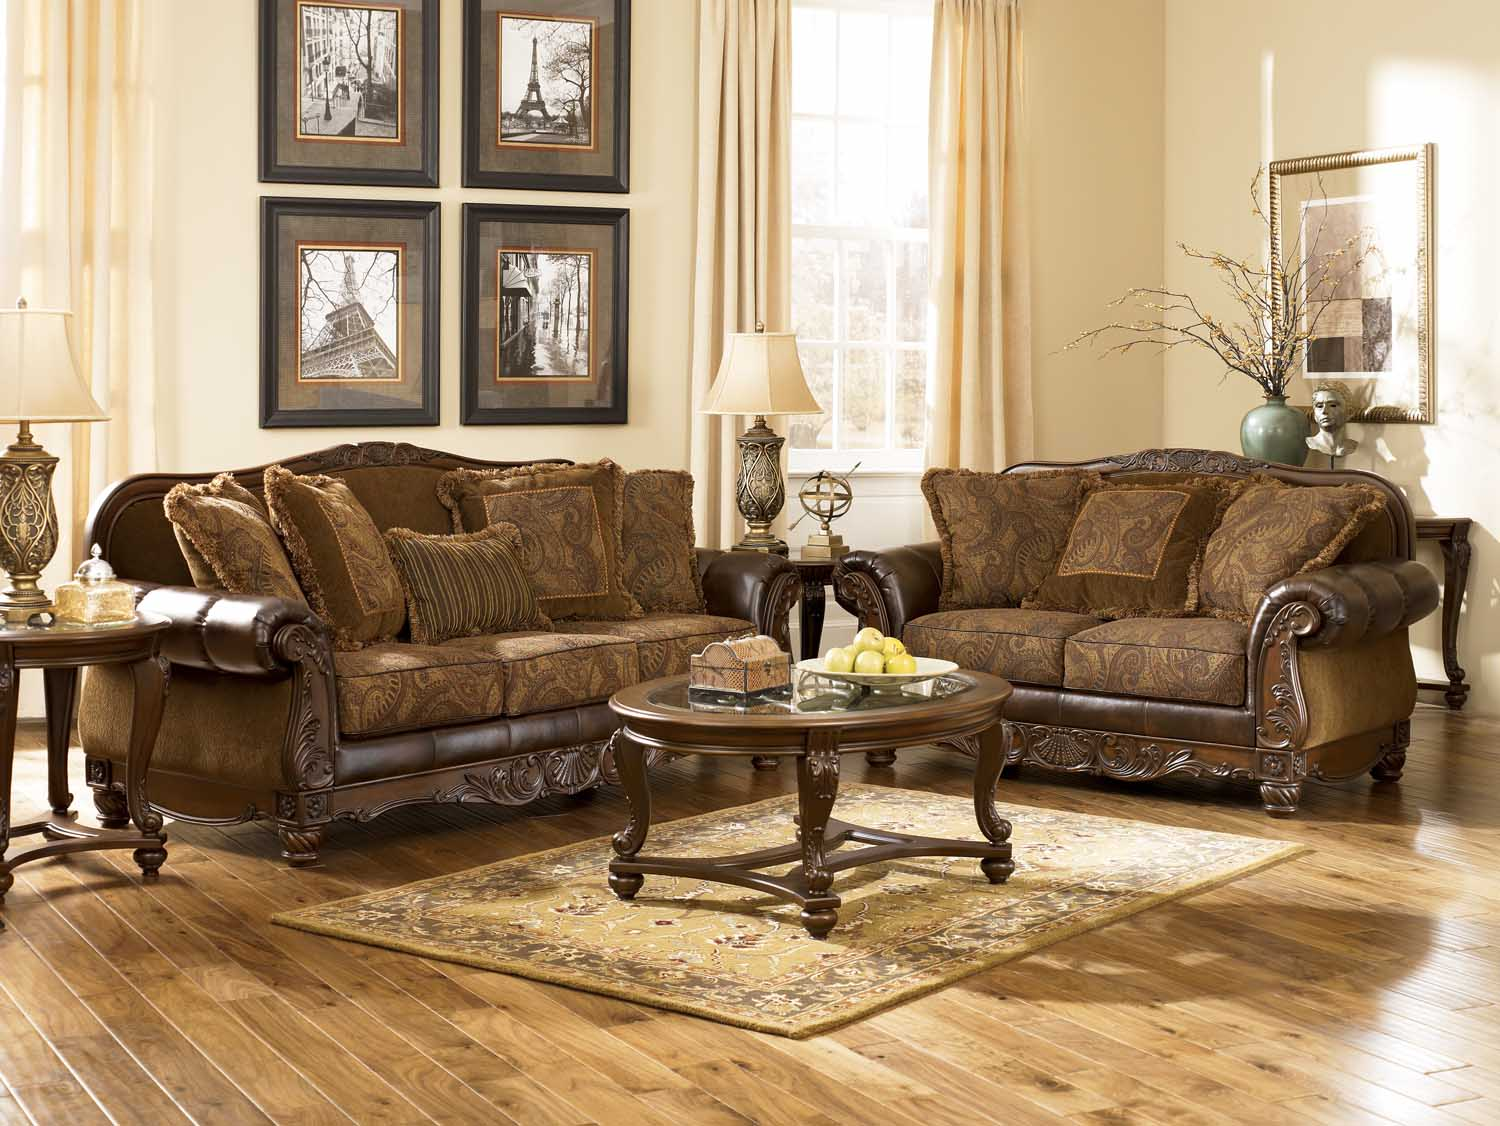 North Shore Living Room Set 63100 In By Ashley Furniture In Houston Tx Ashley 63100 Fresco